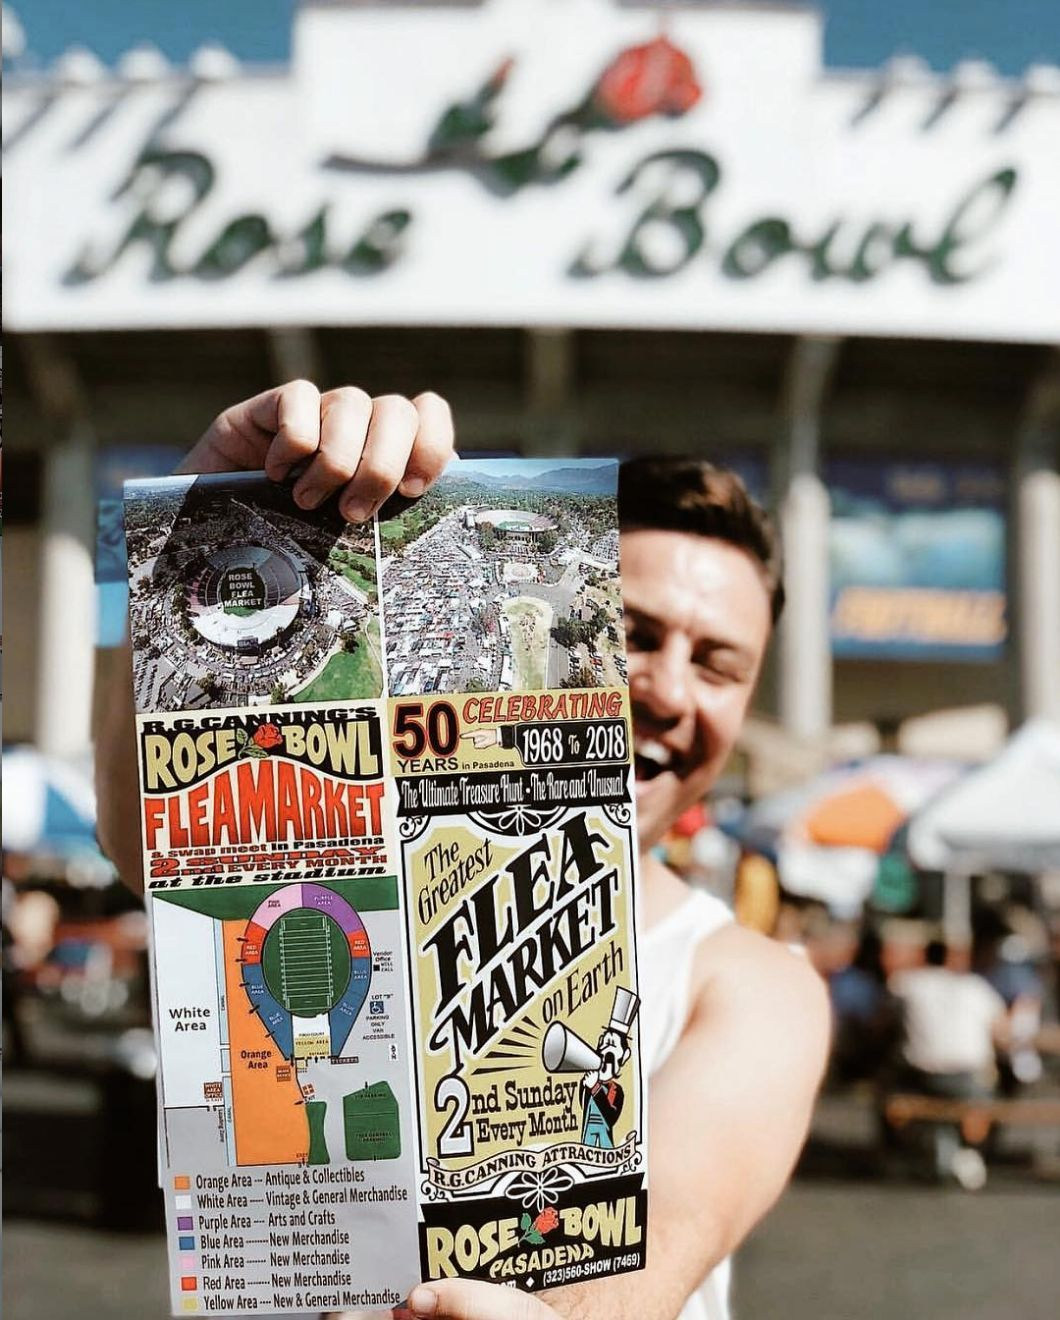 7 Things I Learned From My First Trip To La S Rose Bowl Flea Market Rose Bowl Flea Market Rose Bowl La Trip